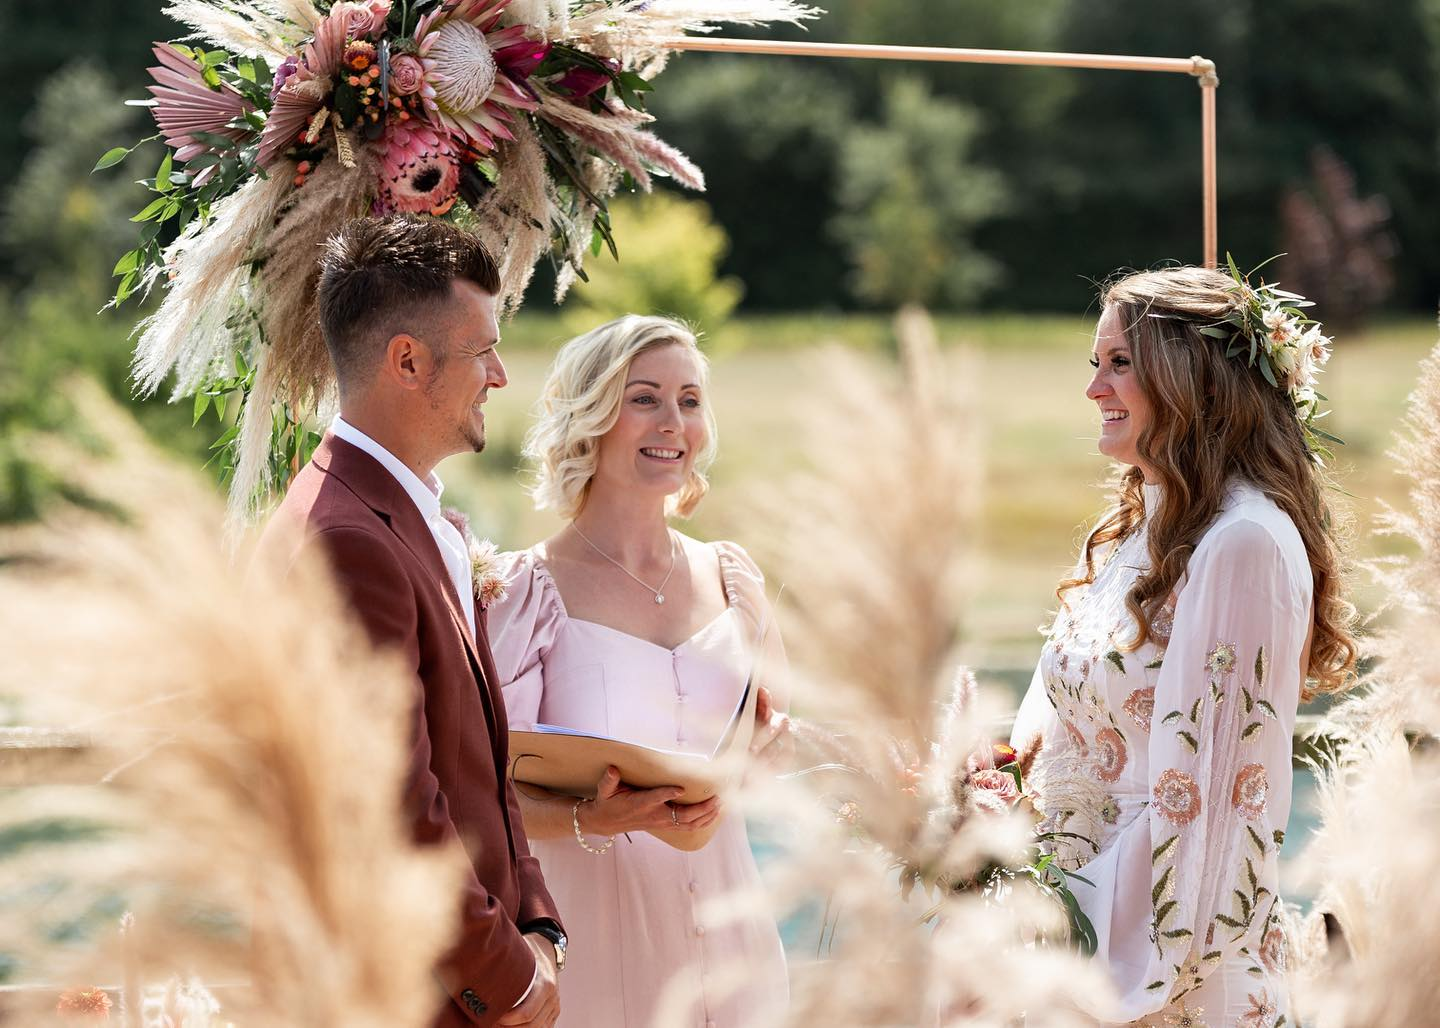 Independent Celebrant conducts outdoor wedding